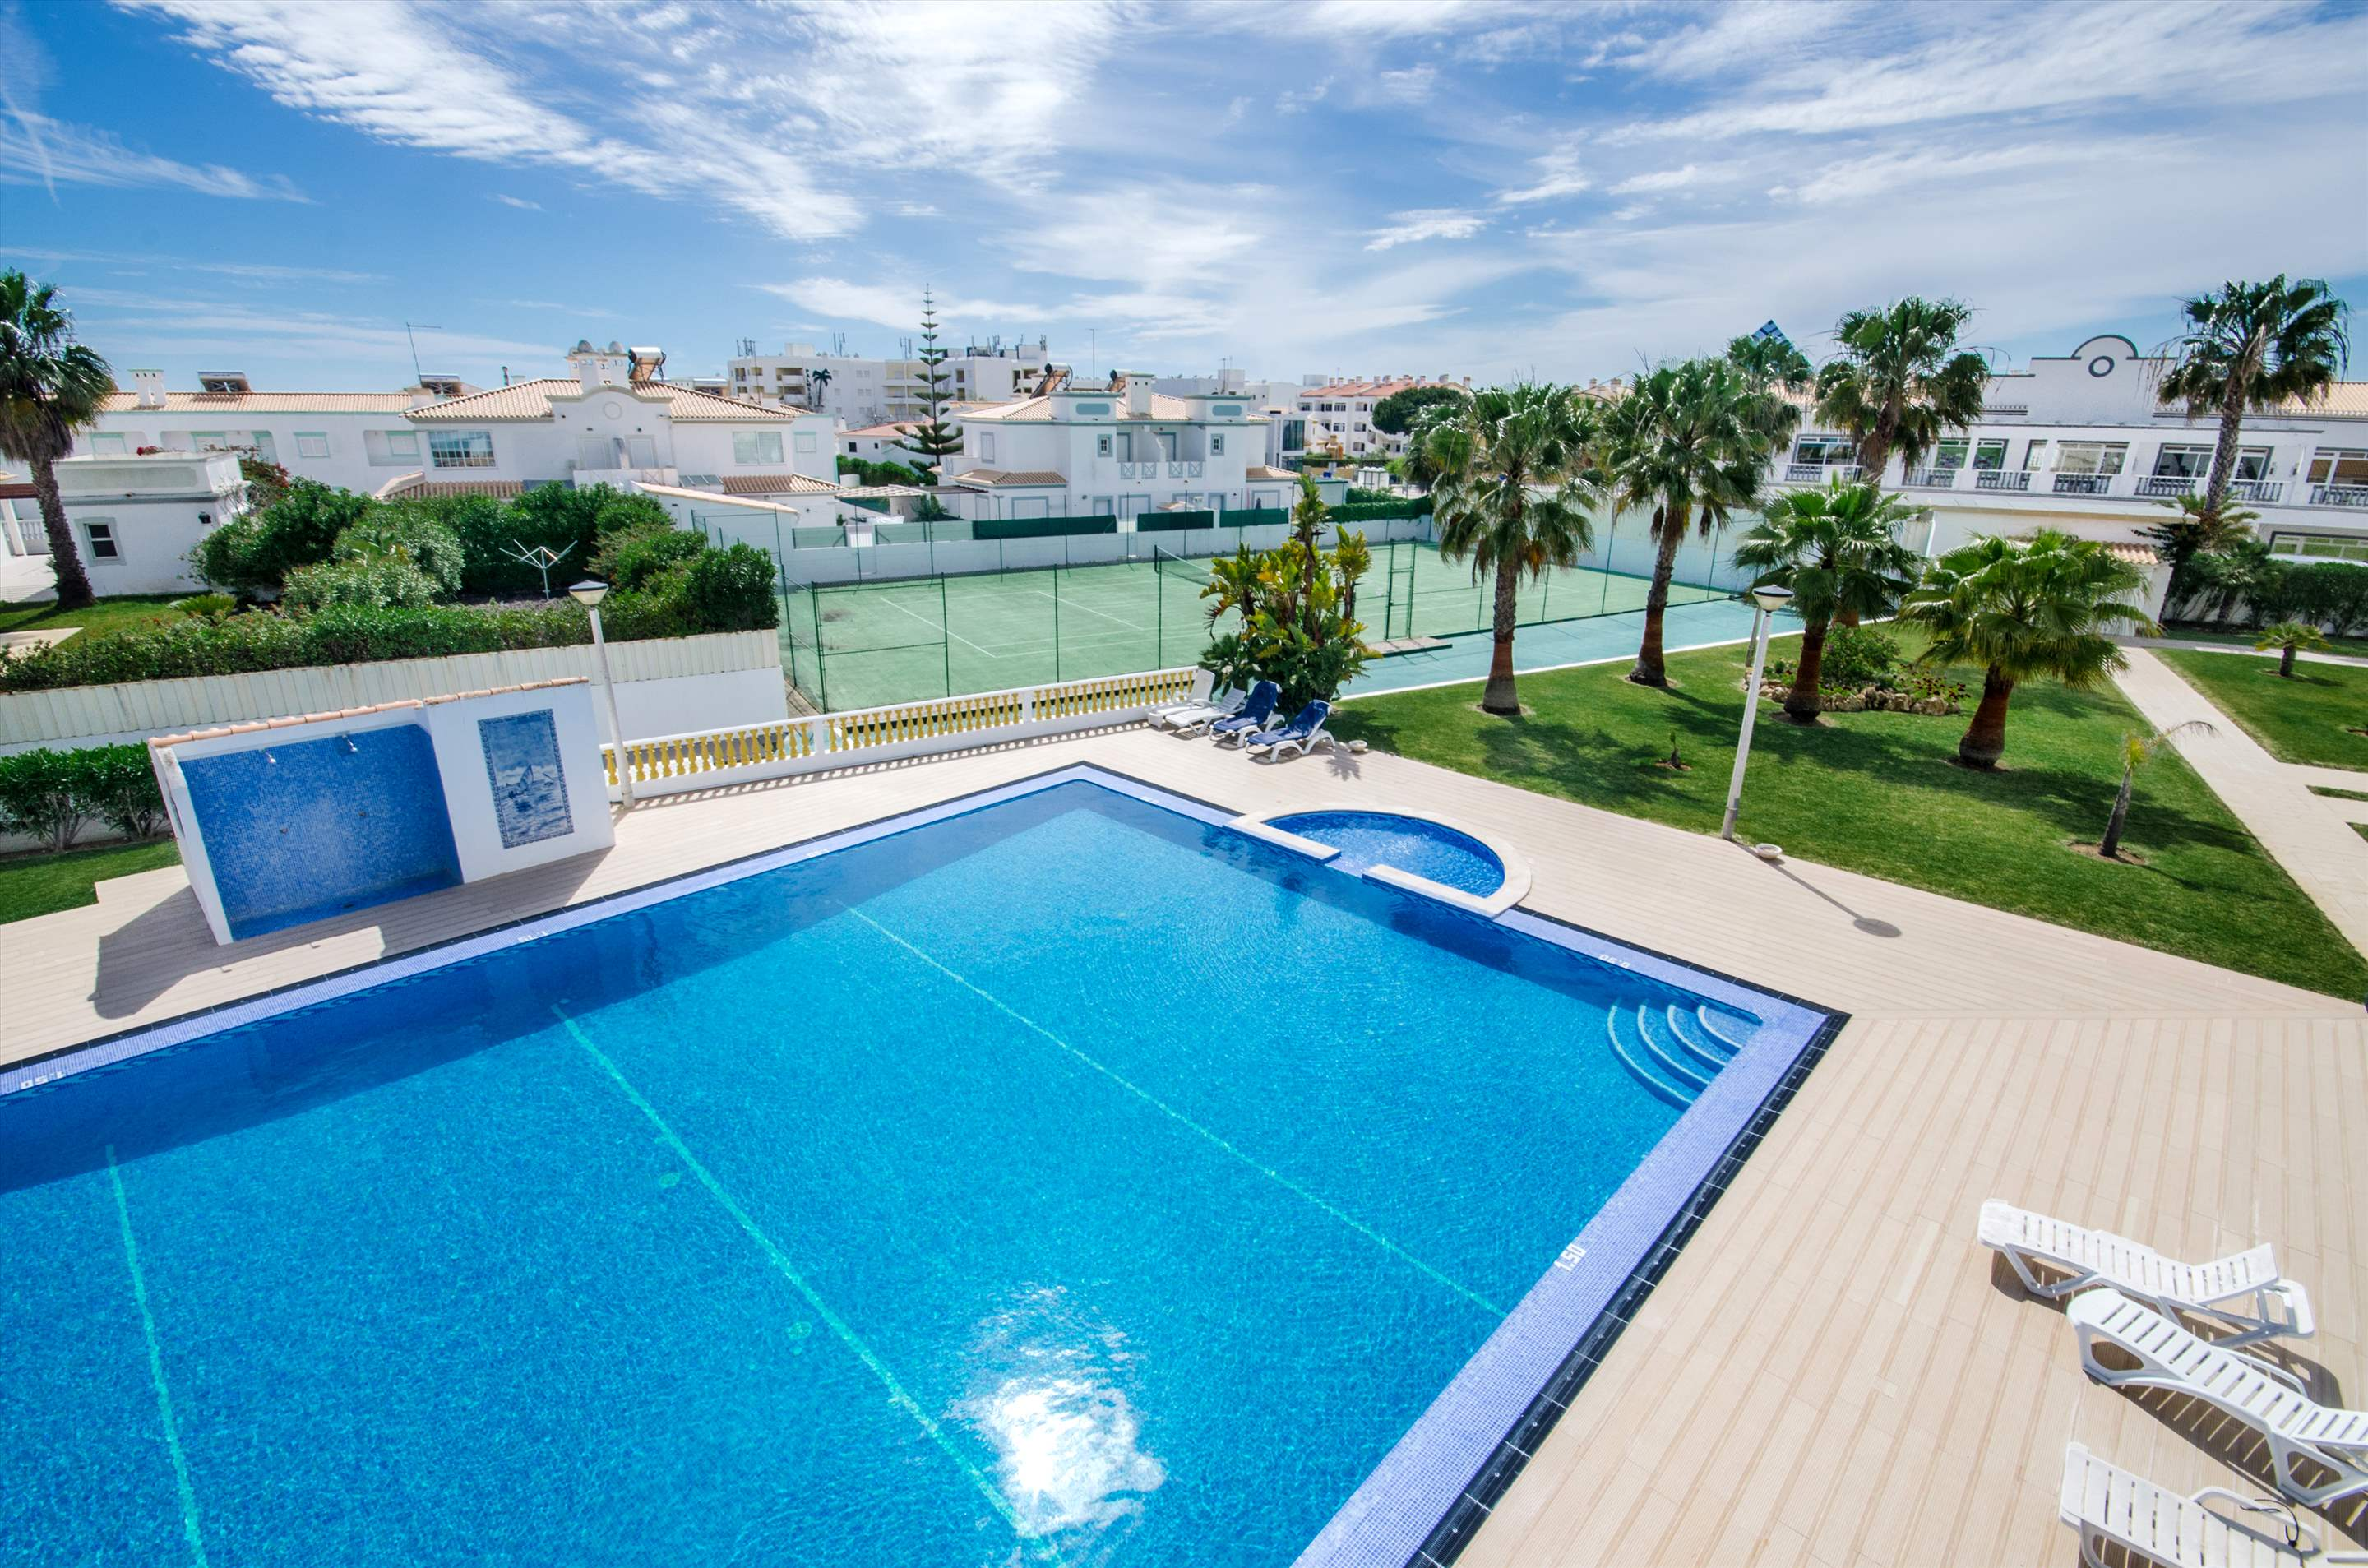 Apt O Monte, For Up to 4 Persons, 2 bedroom apartment in Gale, Vale da Parra and Guia, Algarve Photo #15